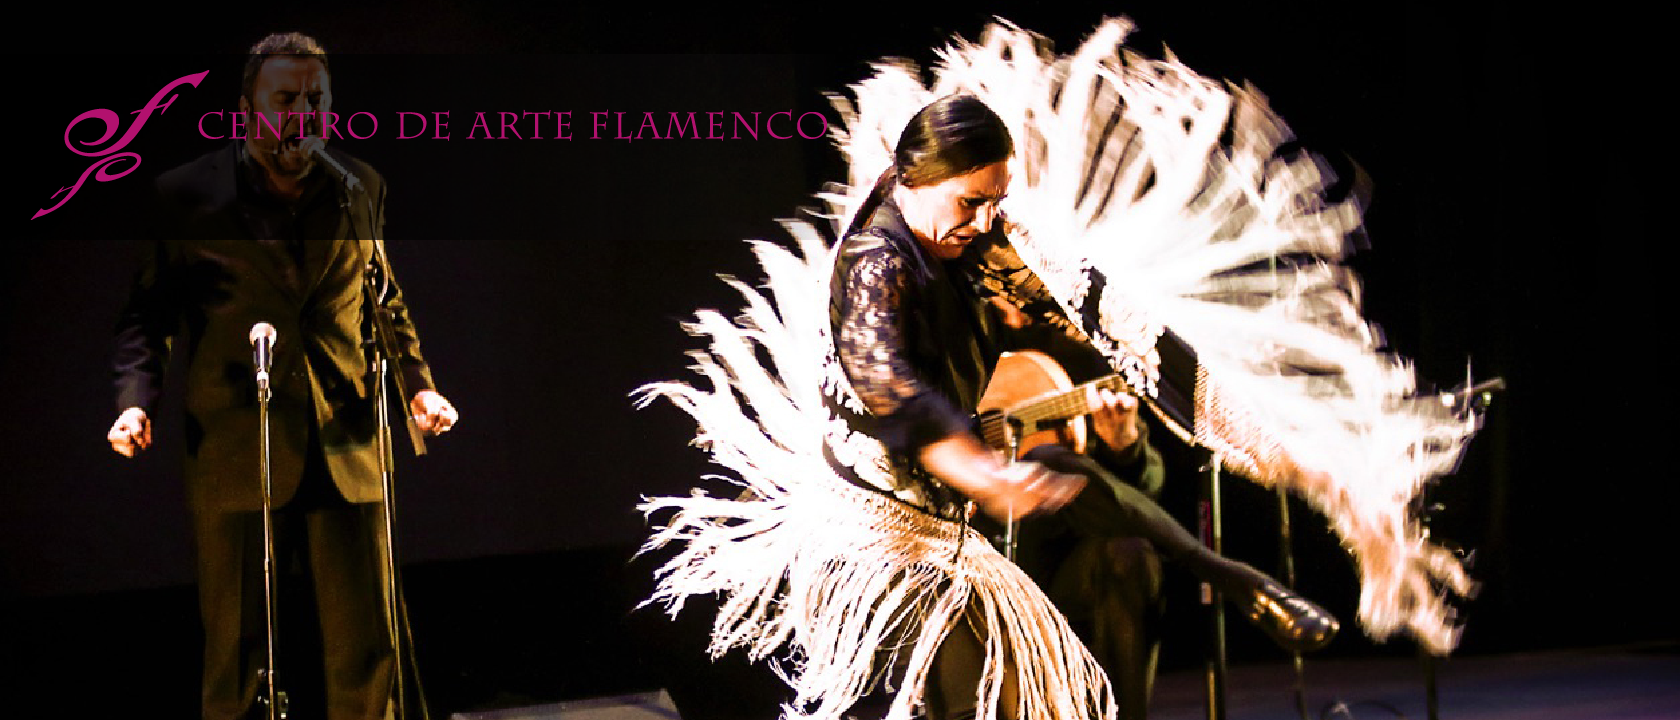 Flamencoworkshops mit Concha Jareño: April 2019